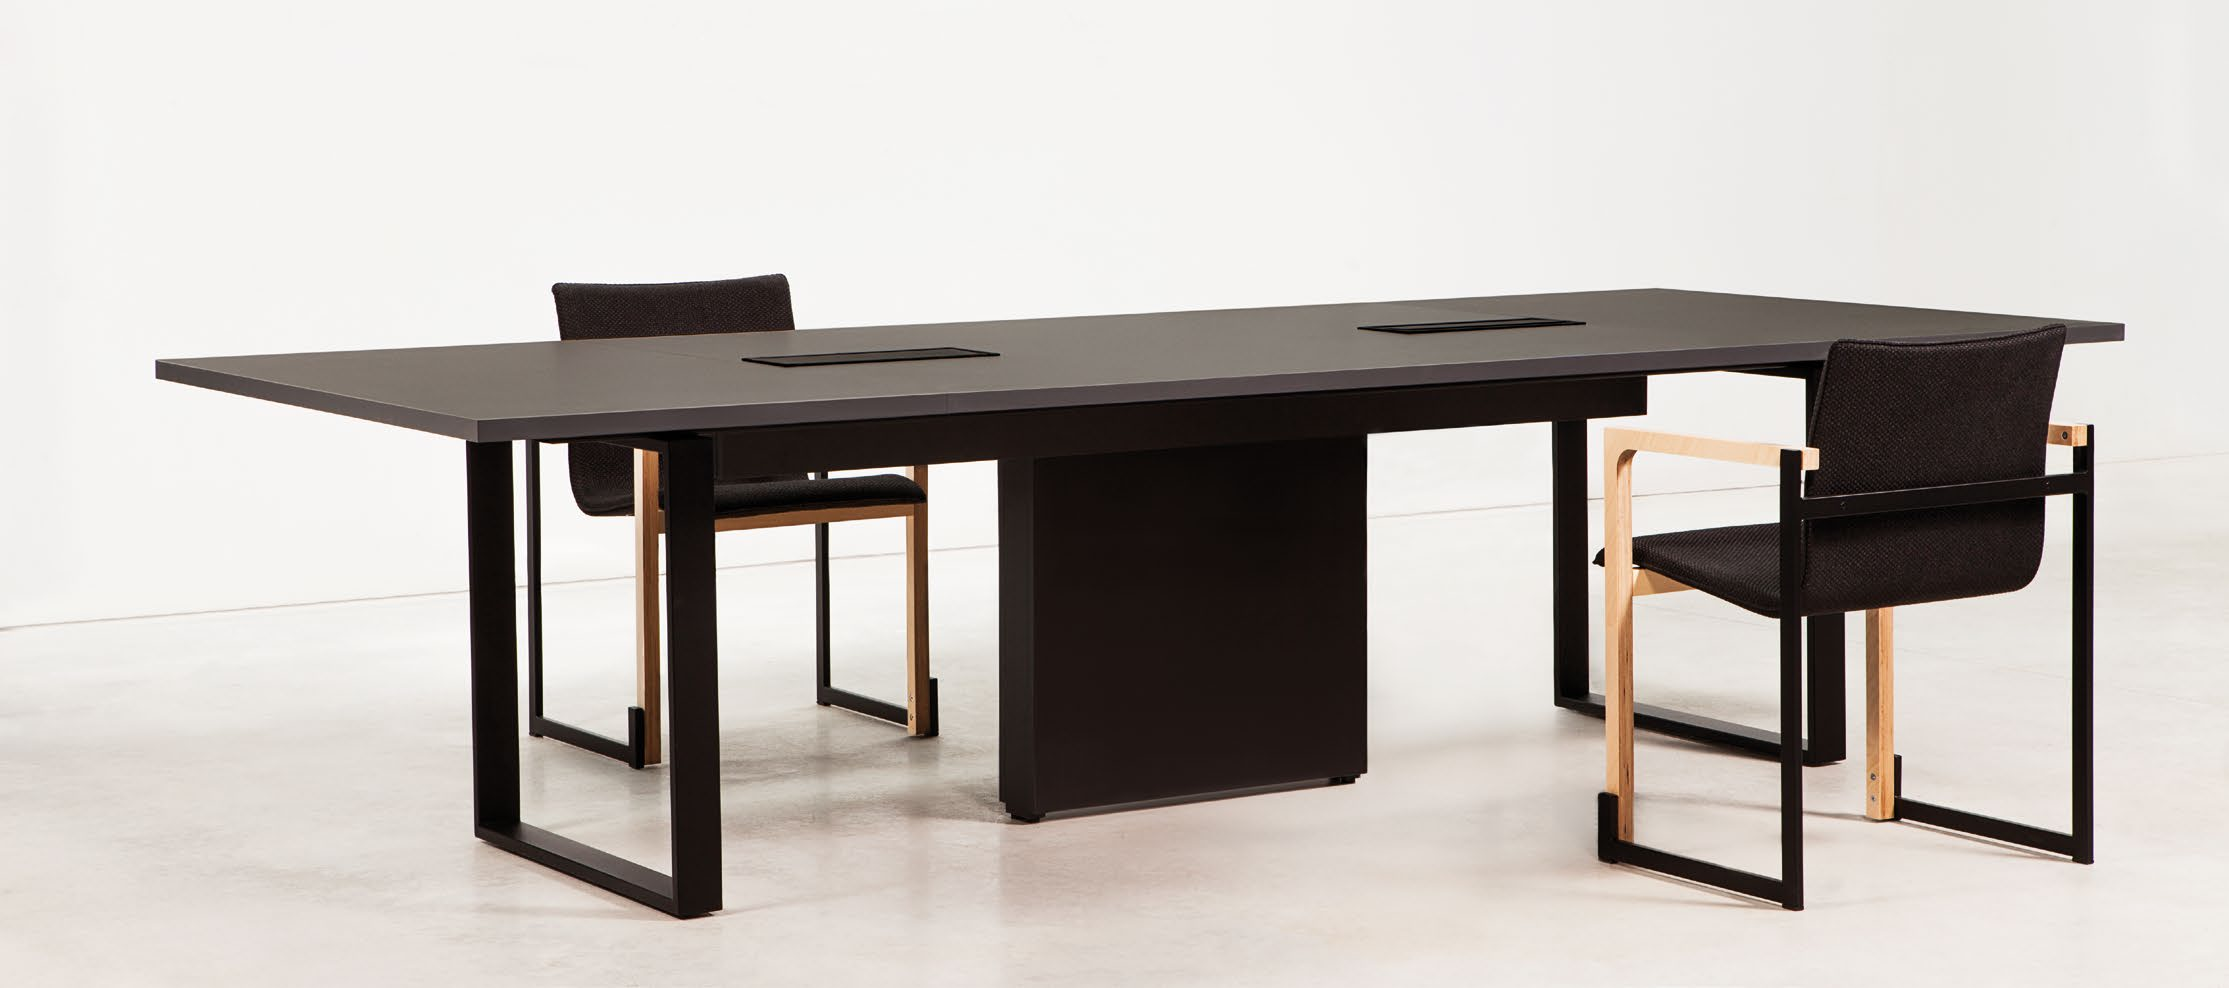 Table de réunion design Bat avec top access